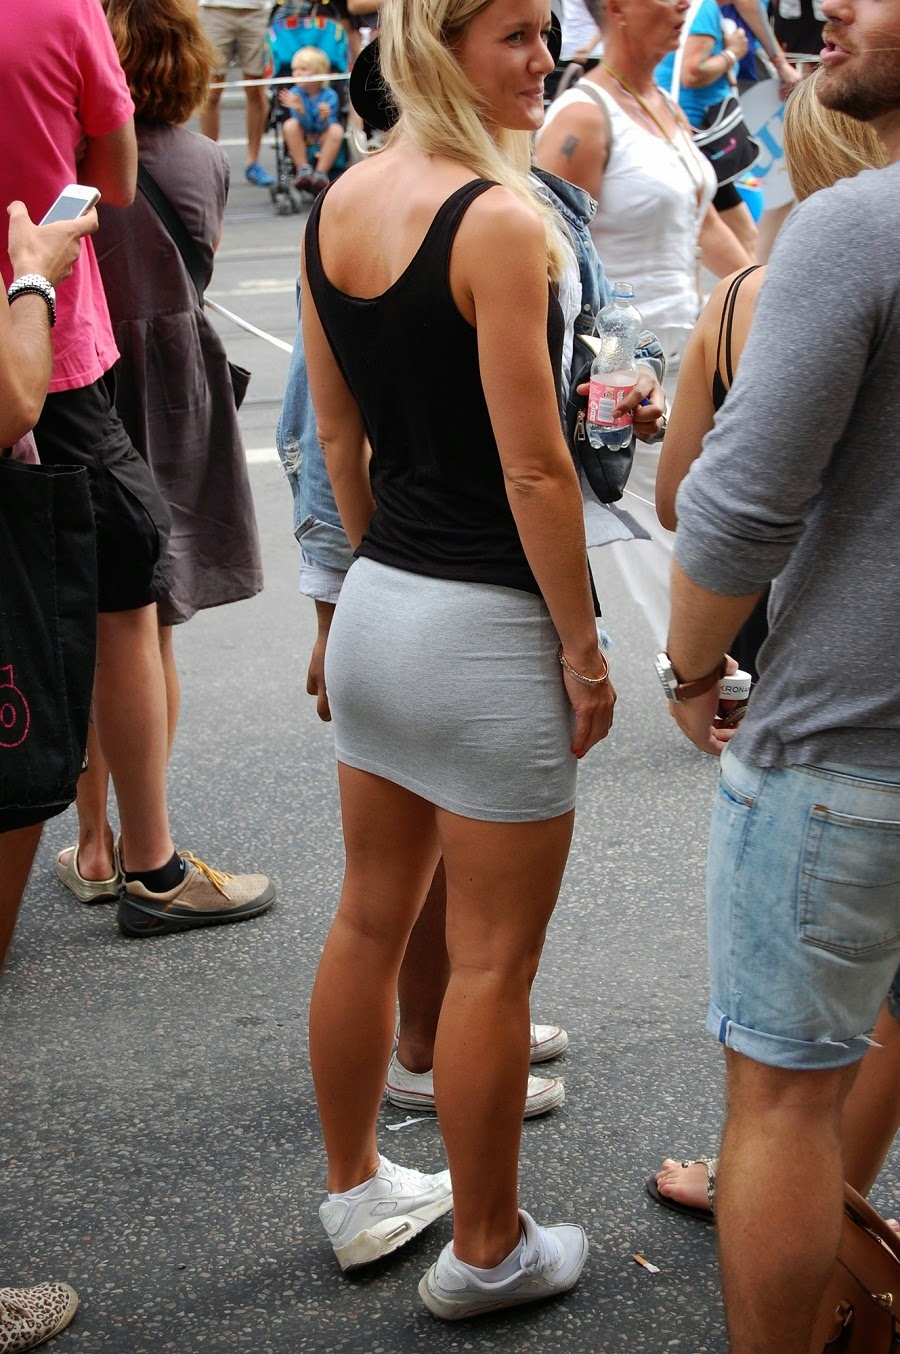 Sexy Babes In Tight Skirts